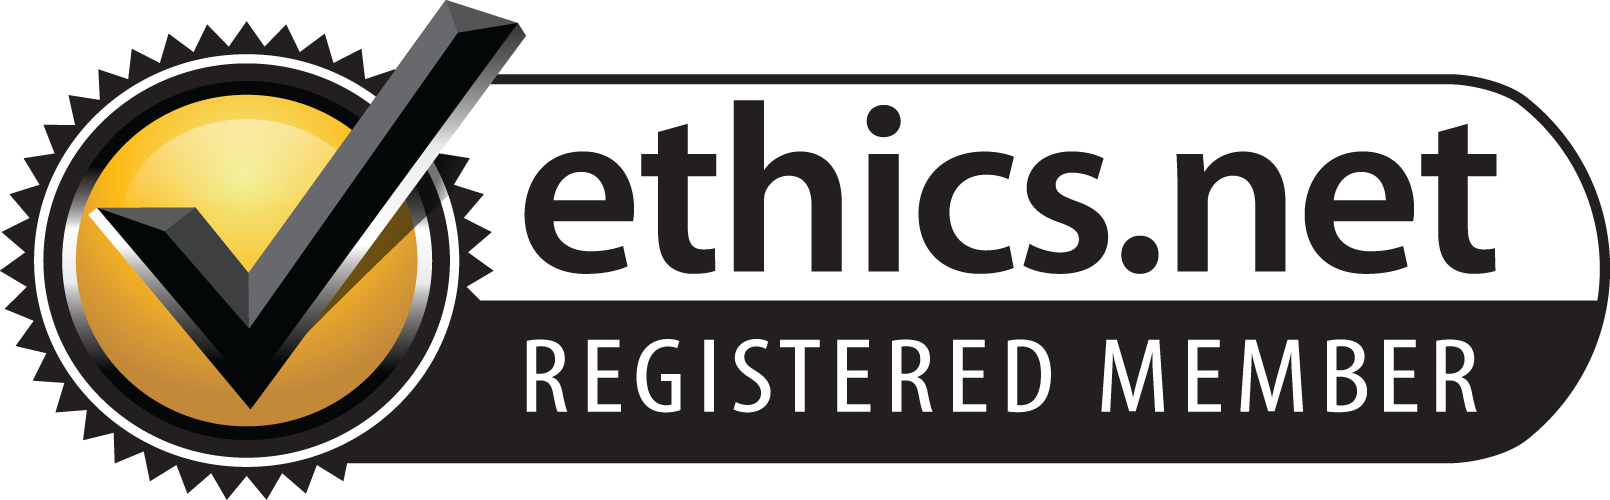 Registered Member - ethics.net